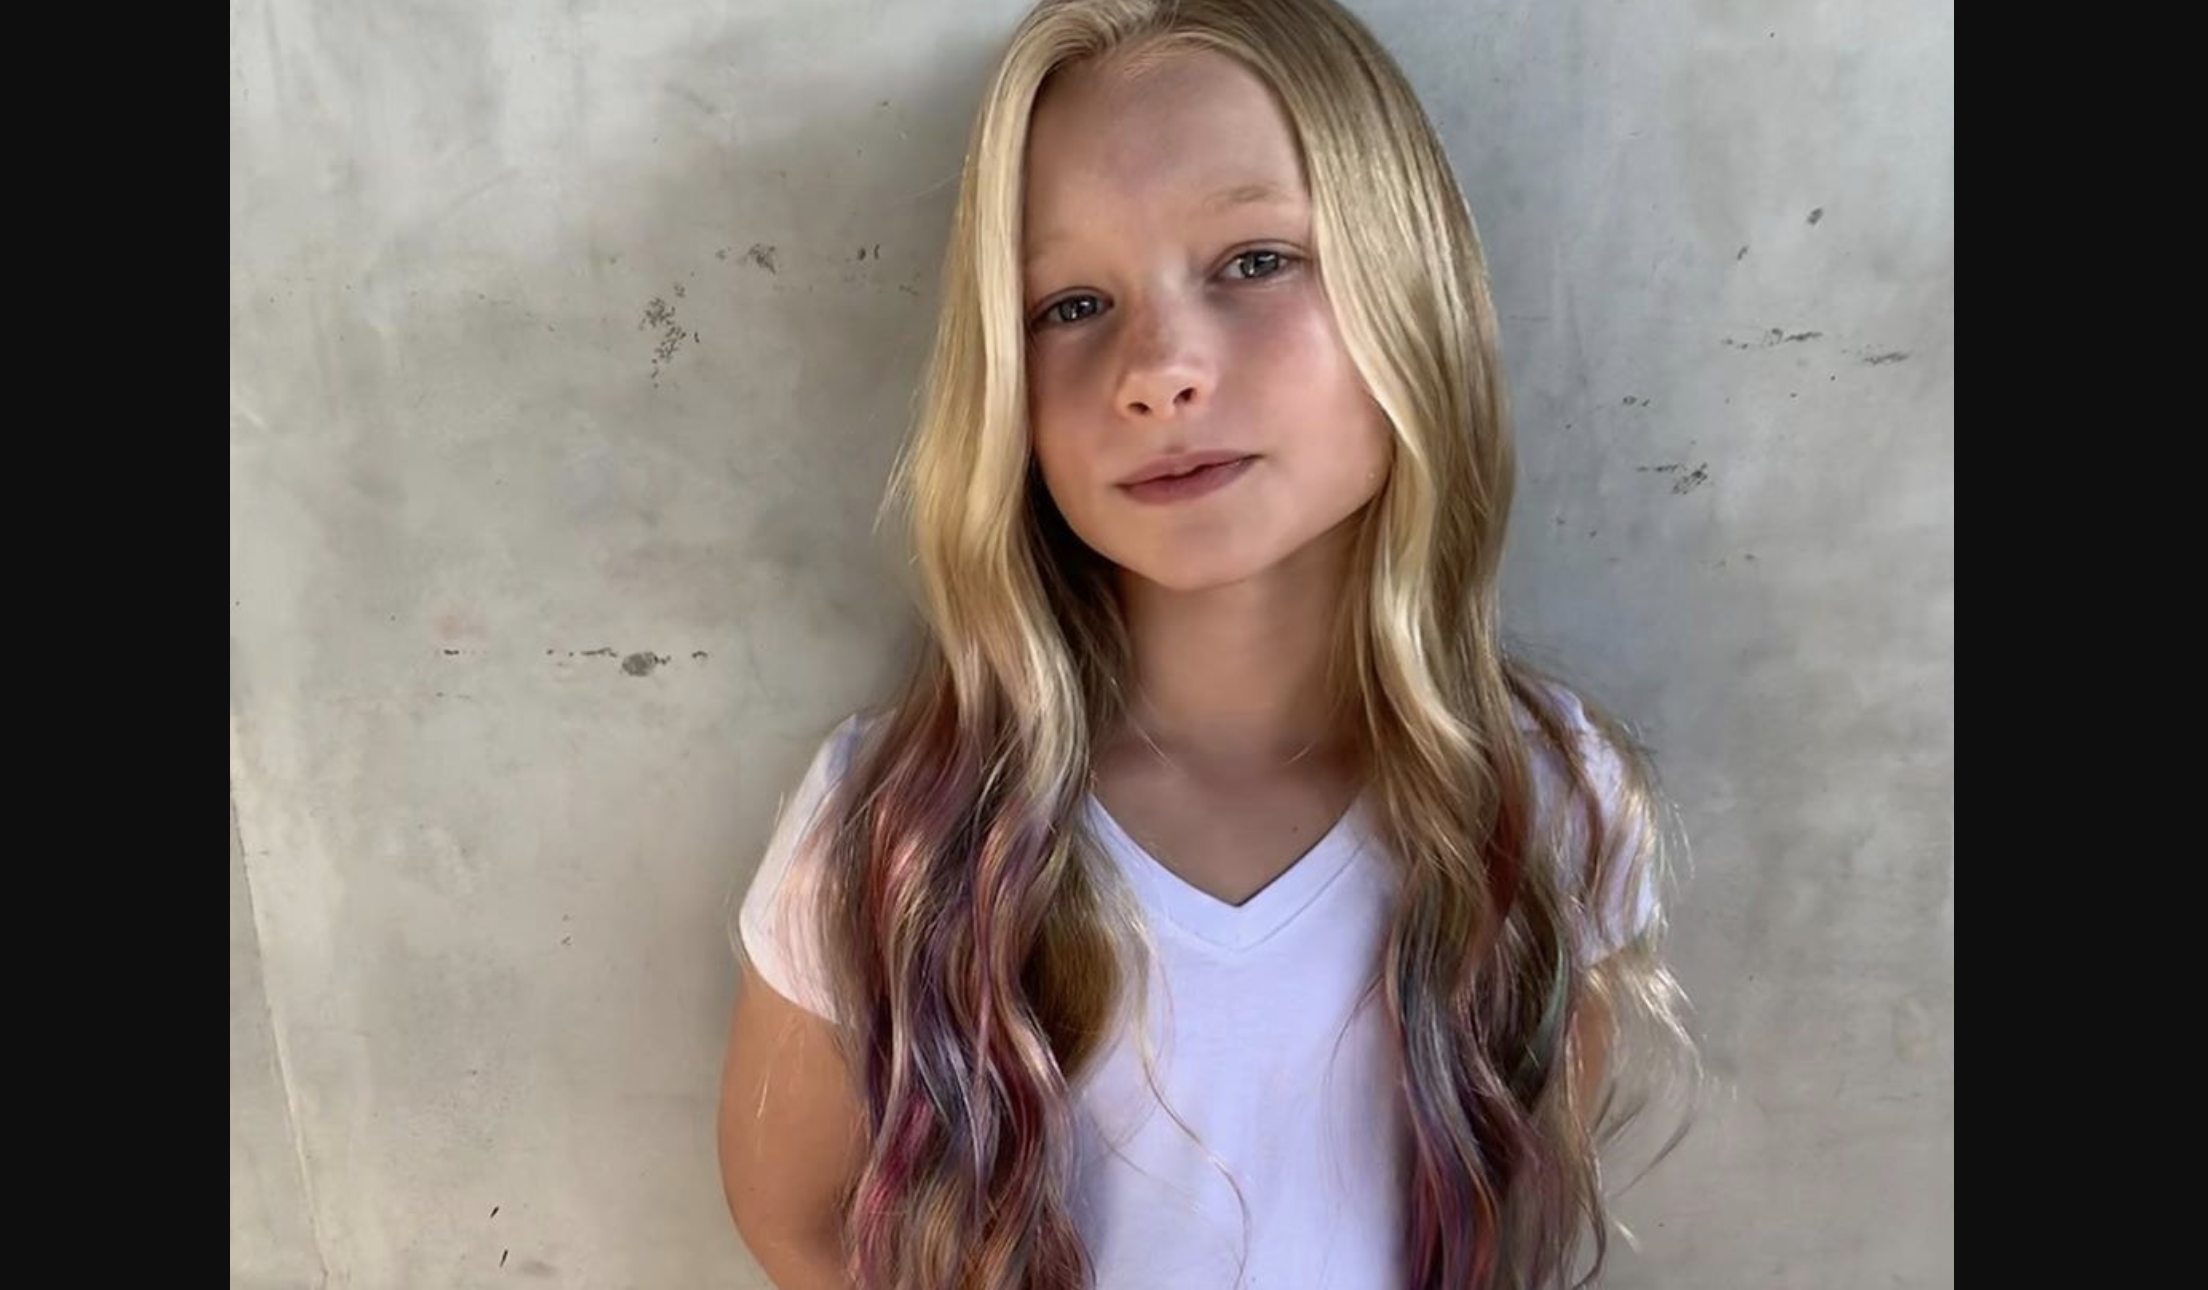 jessica simpson mom-shamed for letting daughter maxi, 7, dye